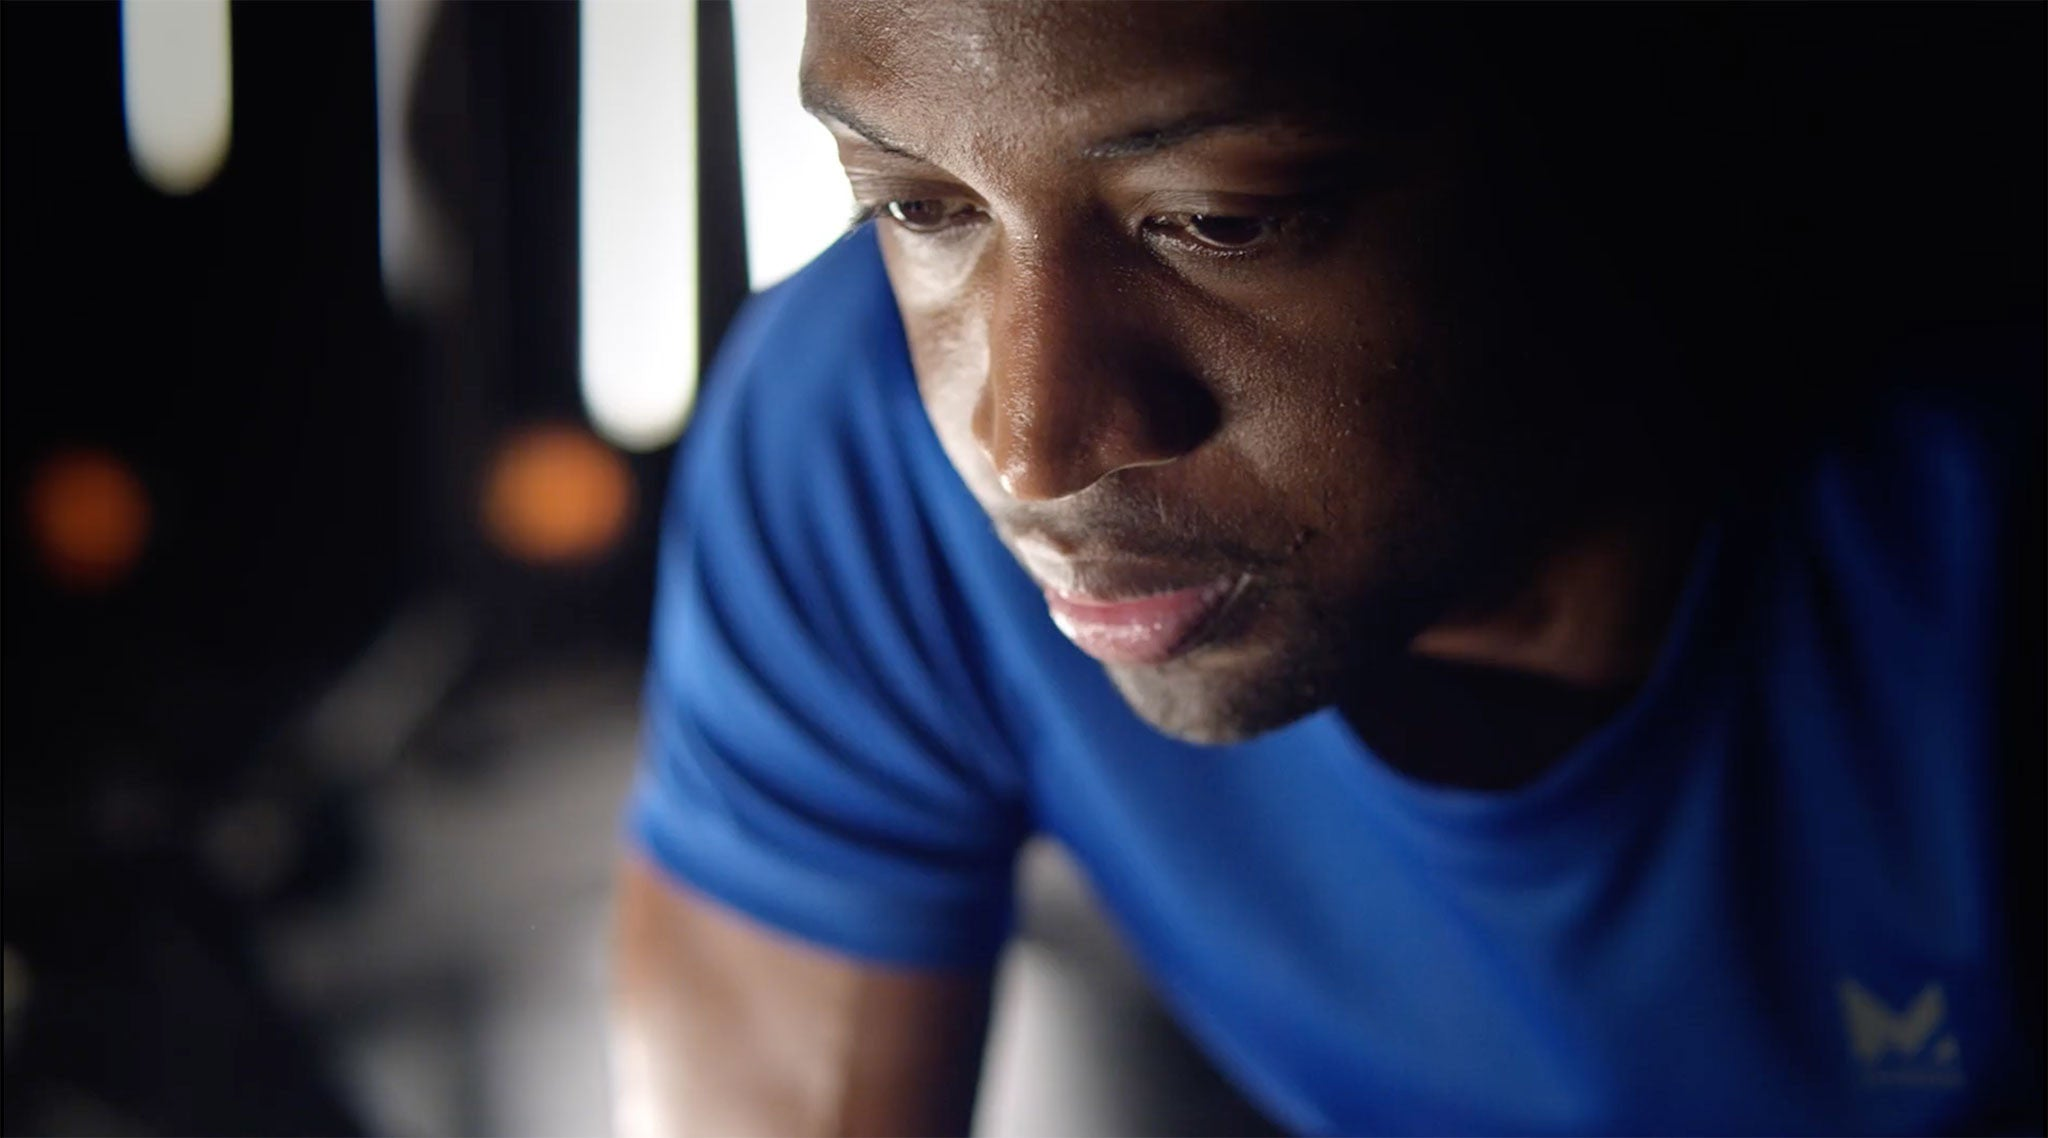 AOL.com - Dwyane Wade drops brand new workout apparel line